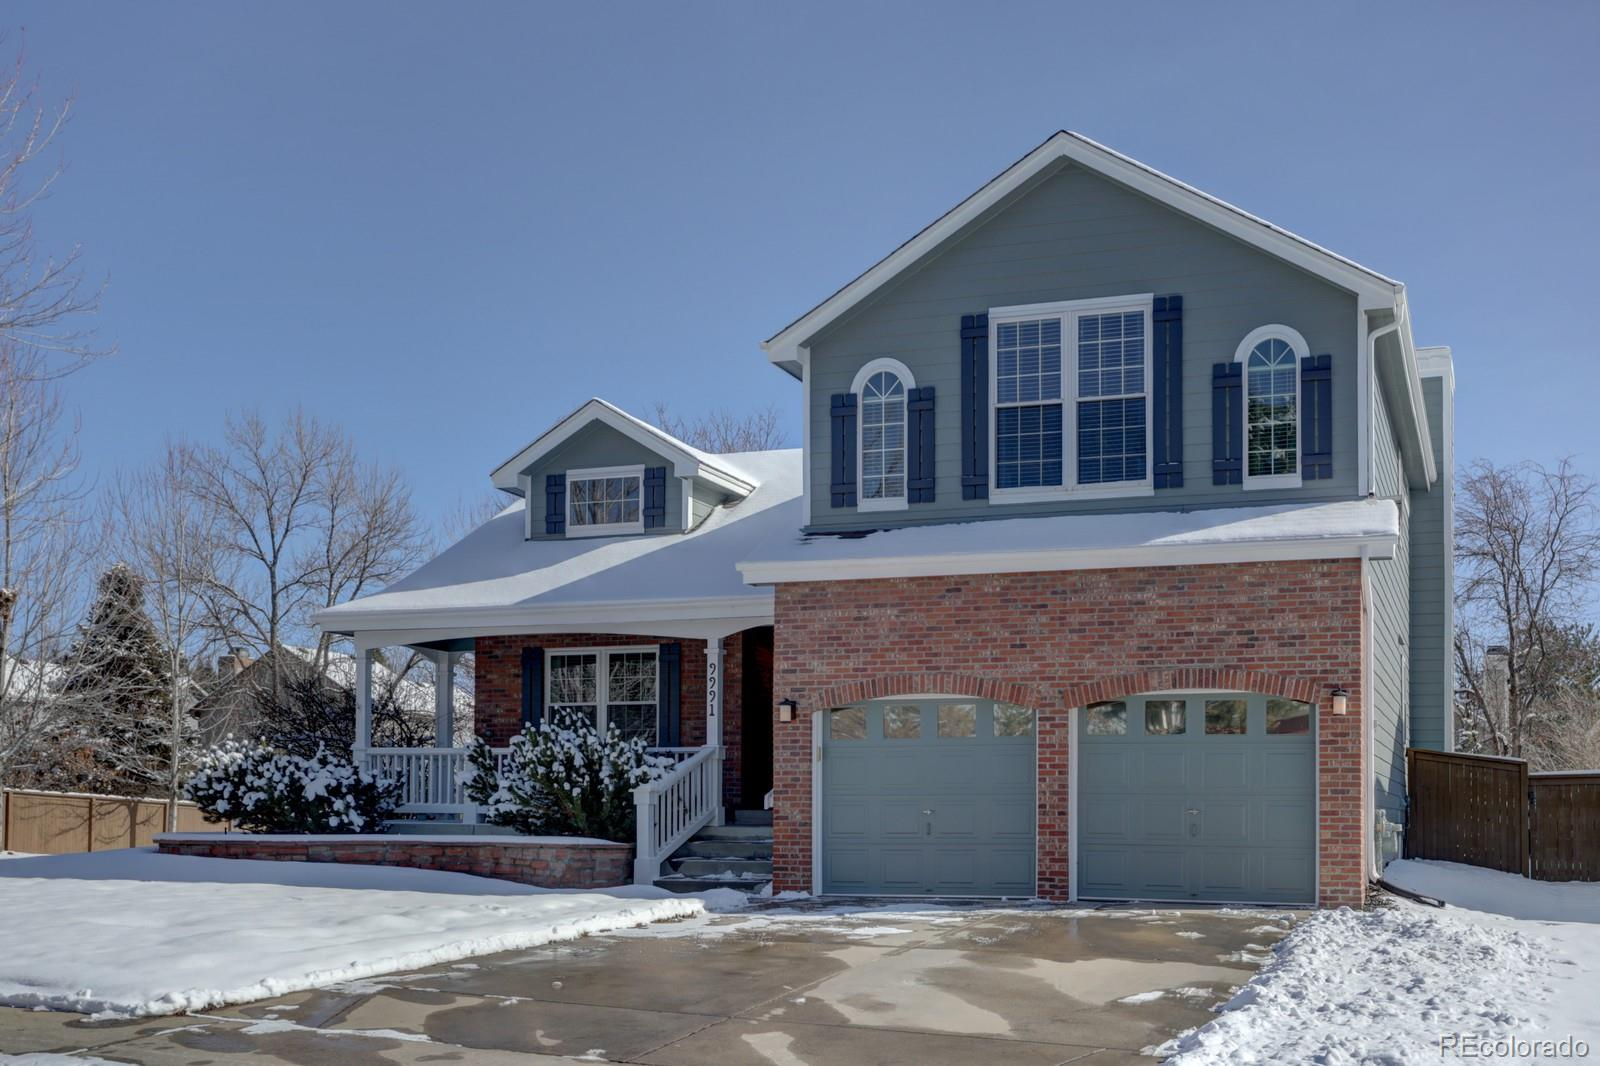 MLS# 5985159 - 2 - 9991 Spring Hill Place, Highlands Ranch, CO 80129